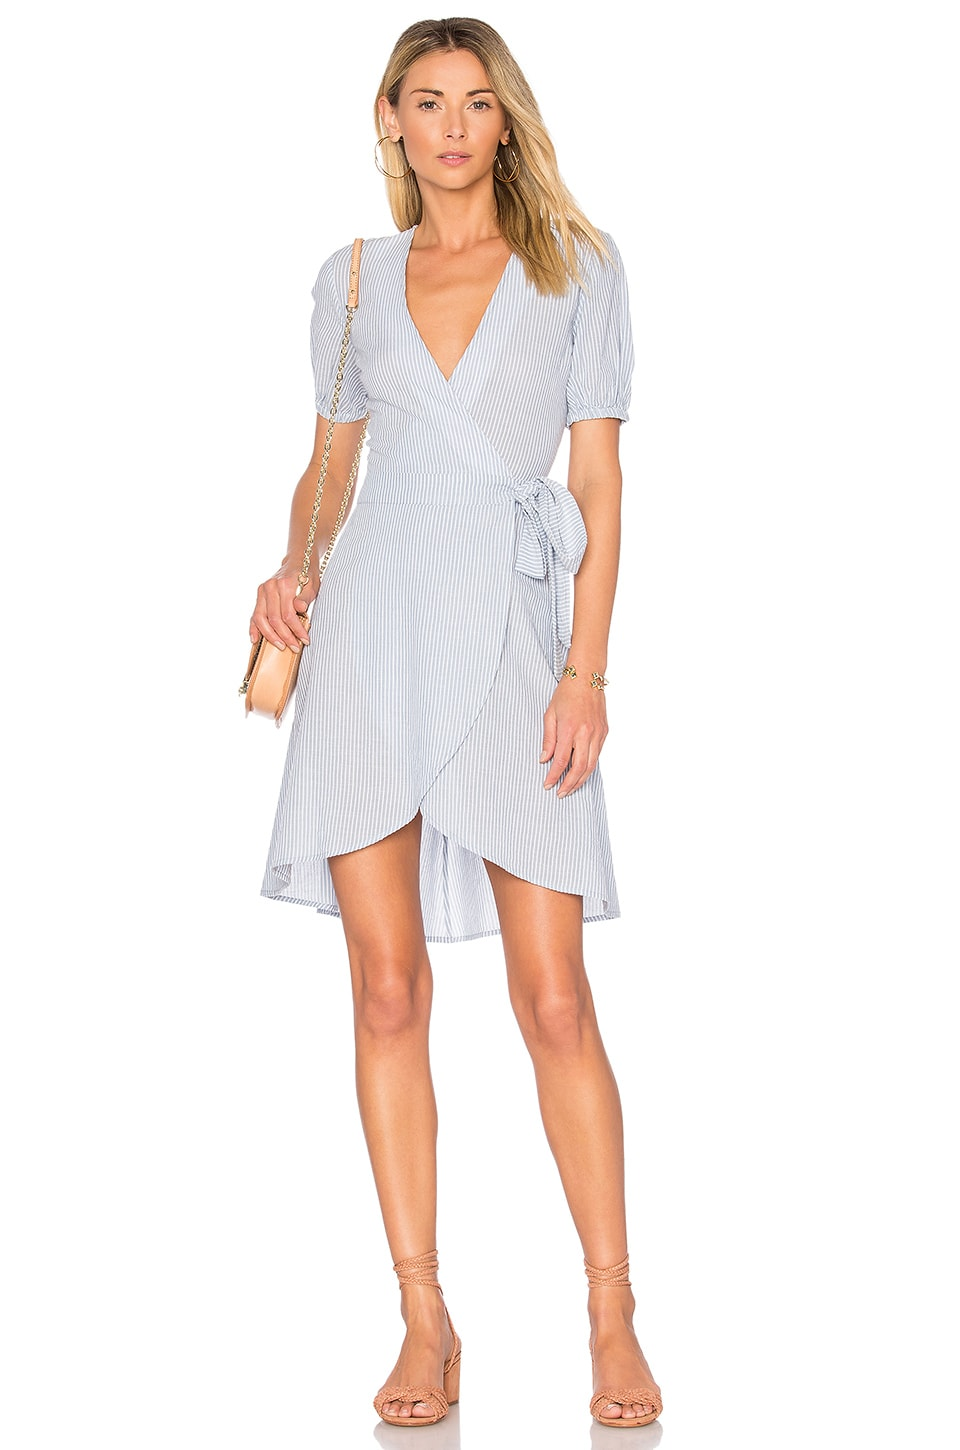 L'Academie x REVOLVE The Hi-Low Wrap Dress in Blue Ladder Stripe